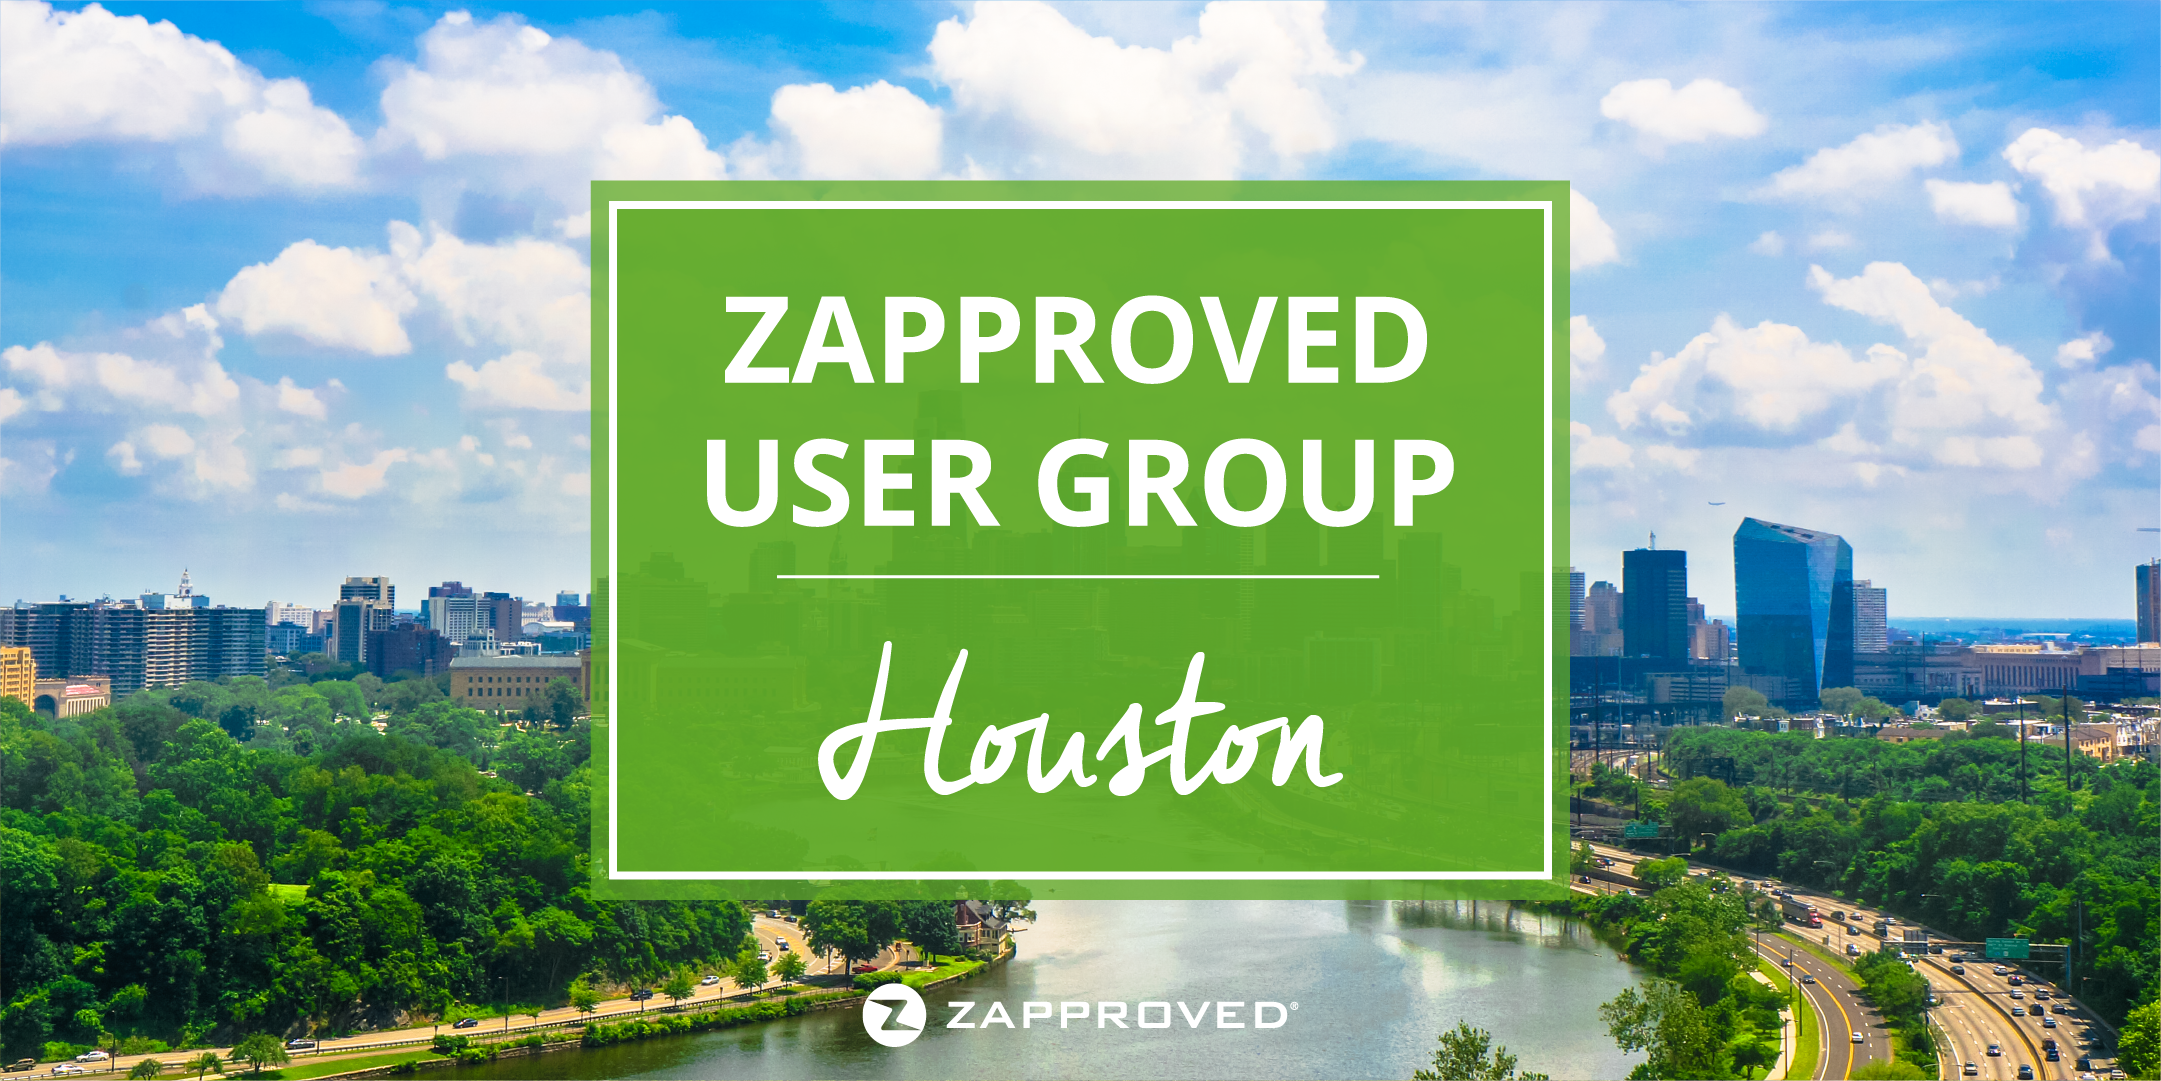 Zapproved User Group | March 2018 in Houston